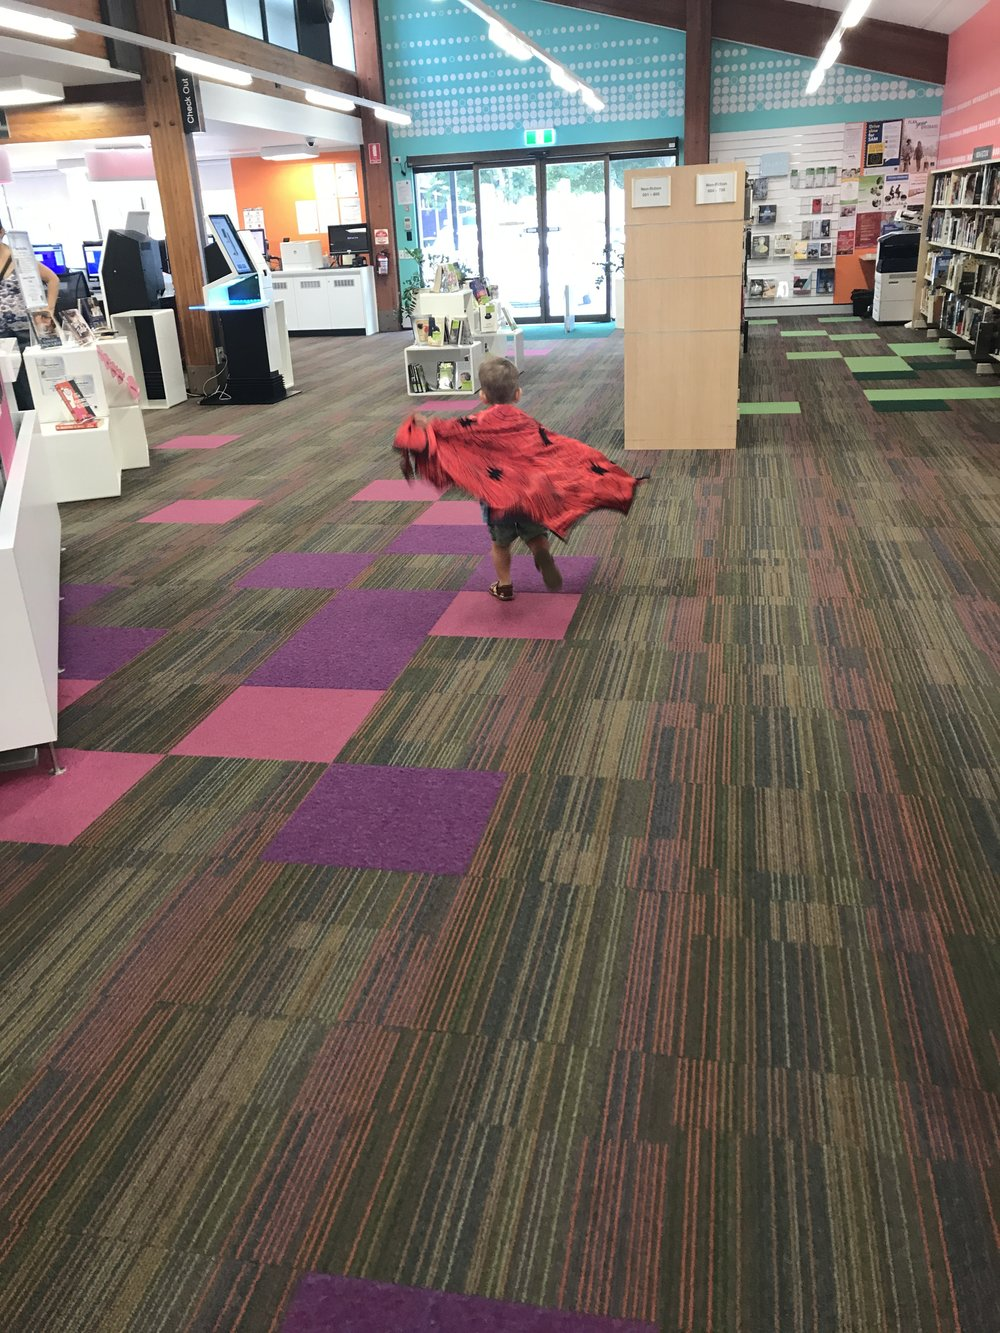 Dress up as superheroes and listen to stories at the library with the minis!